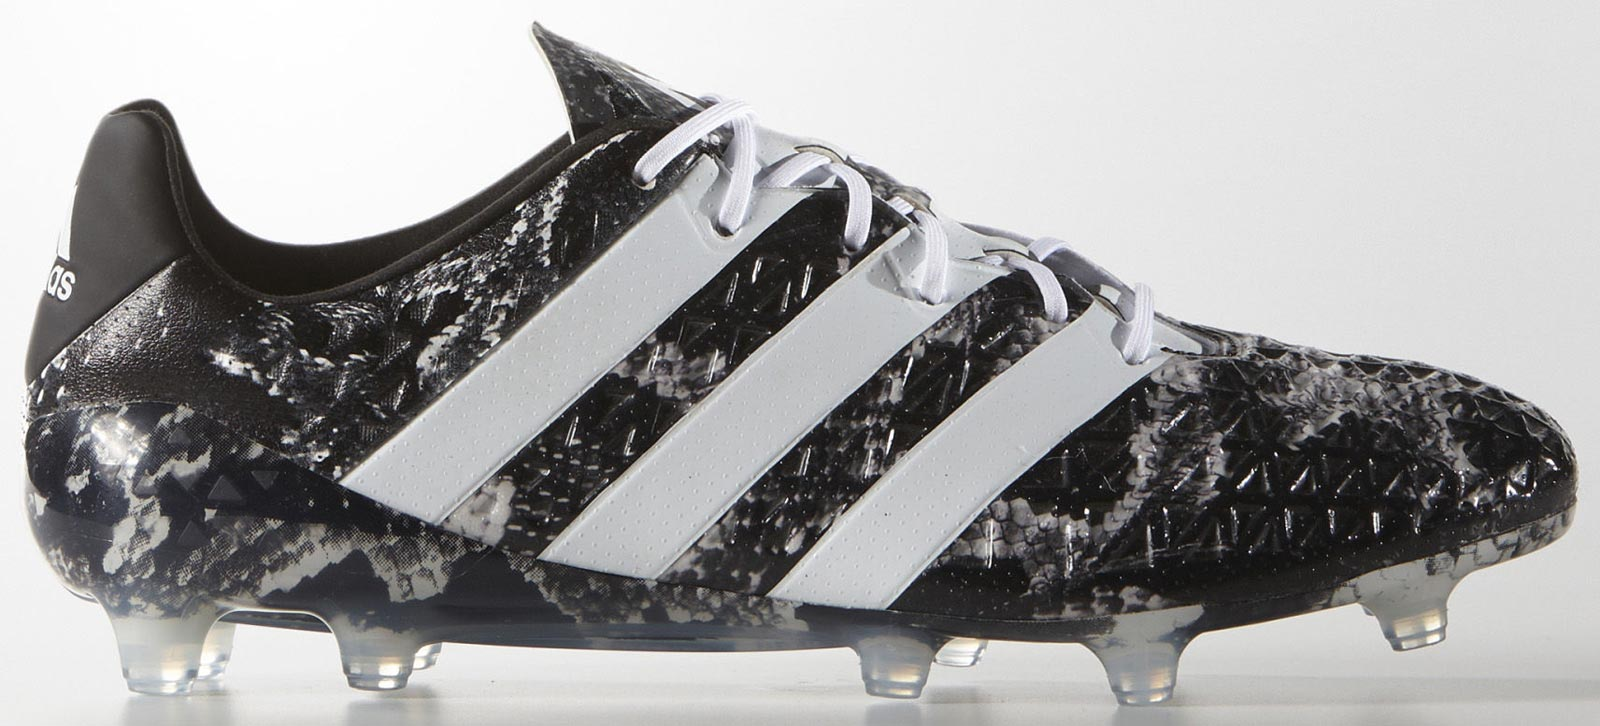 Adidas Ace Deadly Focus 2016 Limited Edition